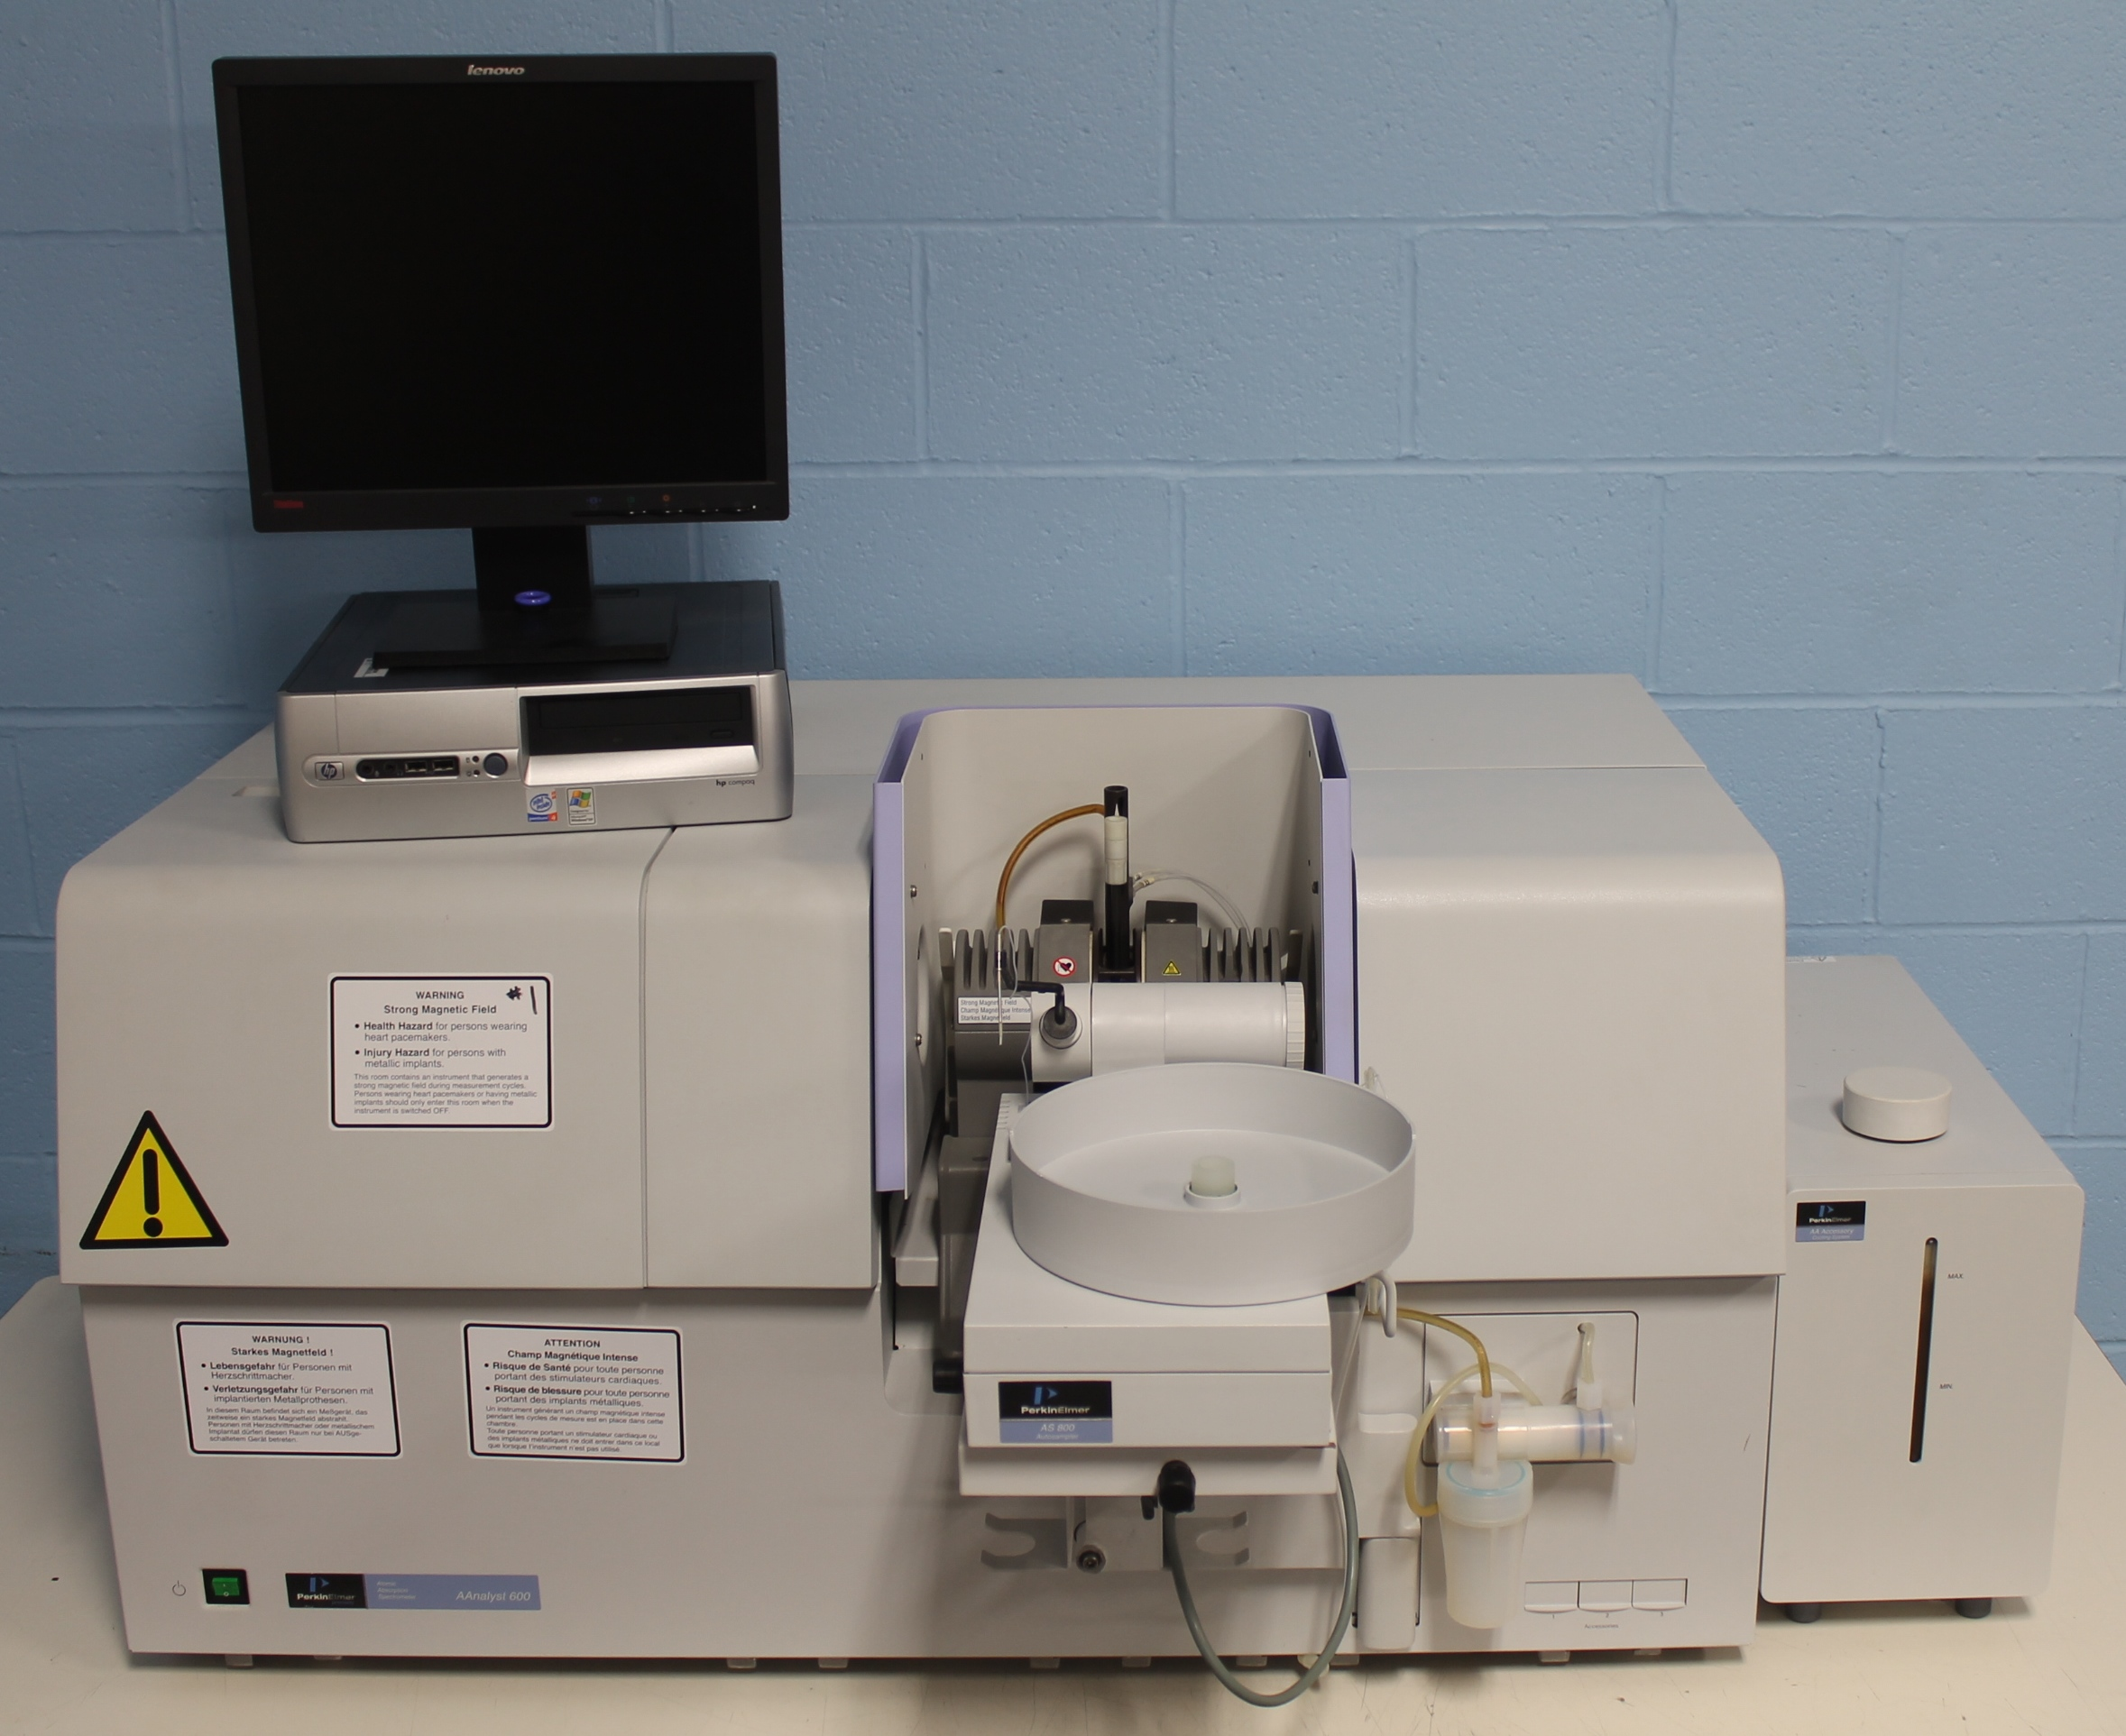 Perkin Elmer AAnalyst 800 Atomic Absorption Spectrometer Image